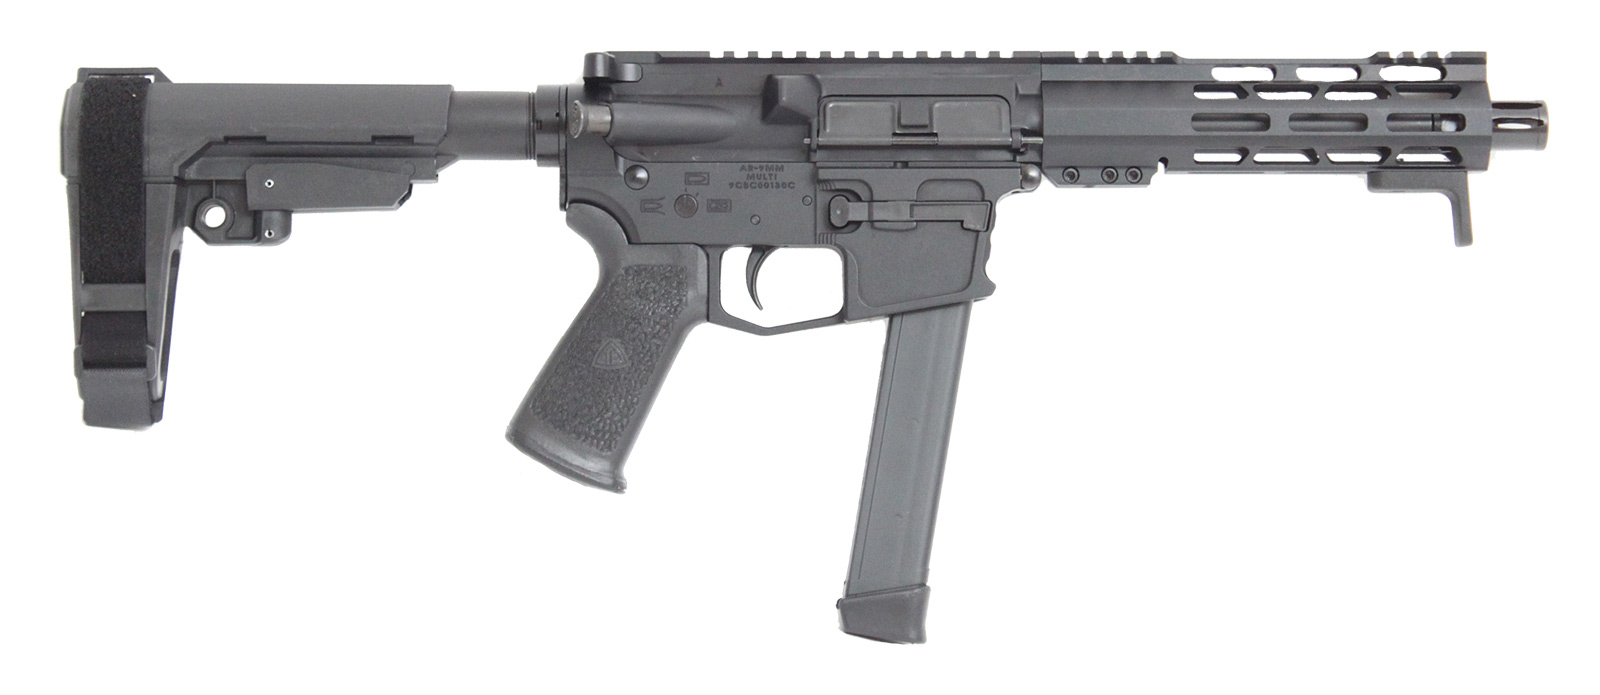 ar9-complete-pistol-7-5-inches-9mm-m-lok-non-lock-back-200231